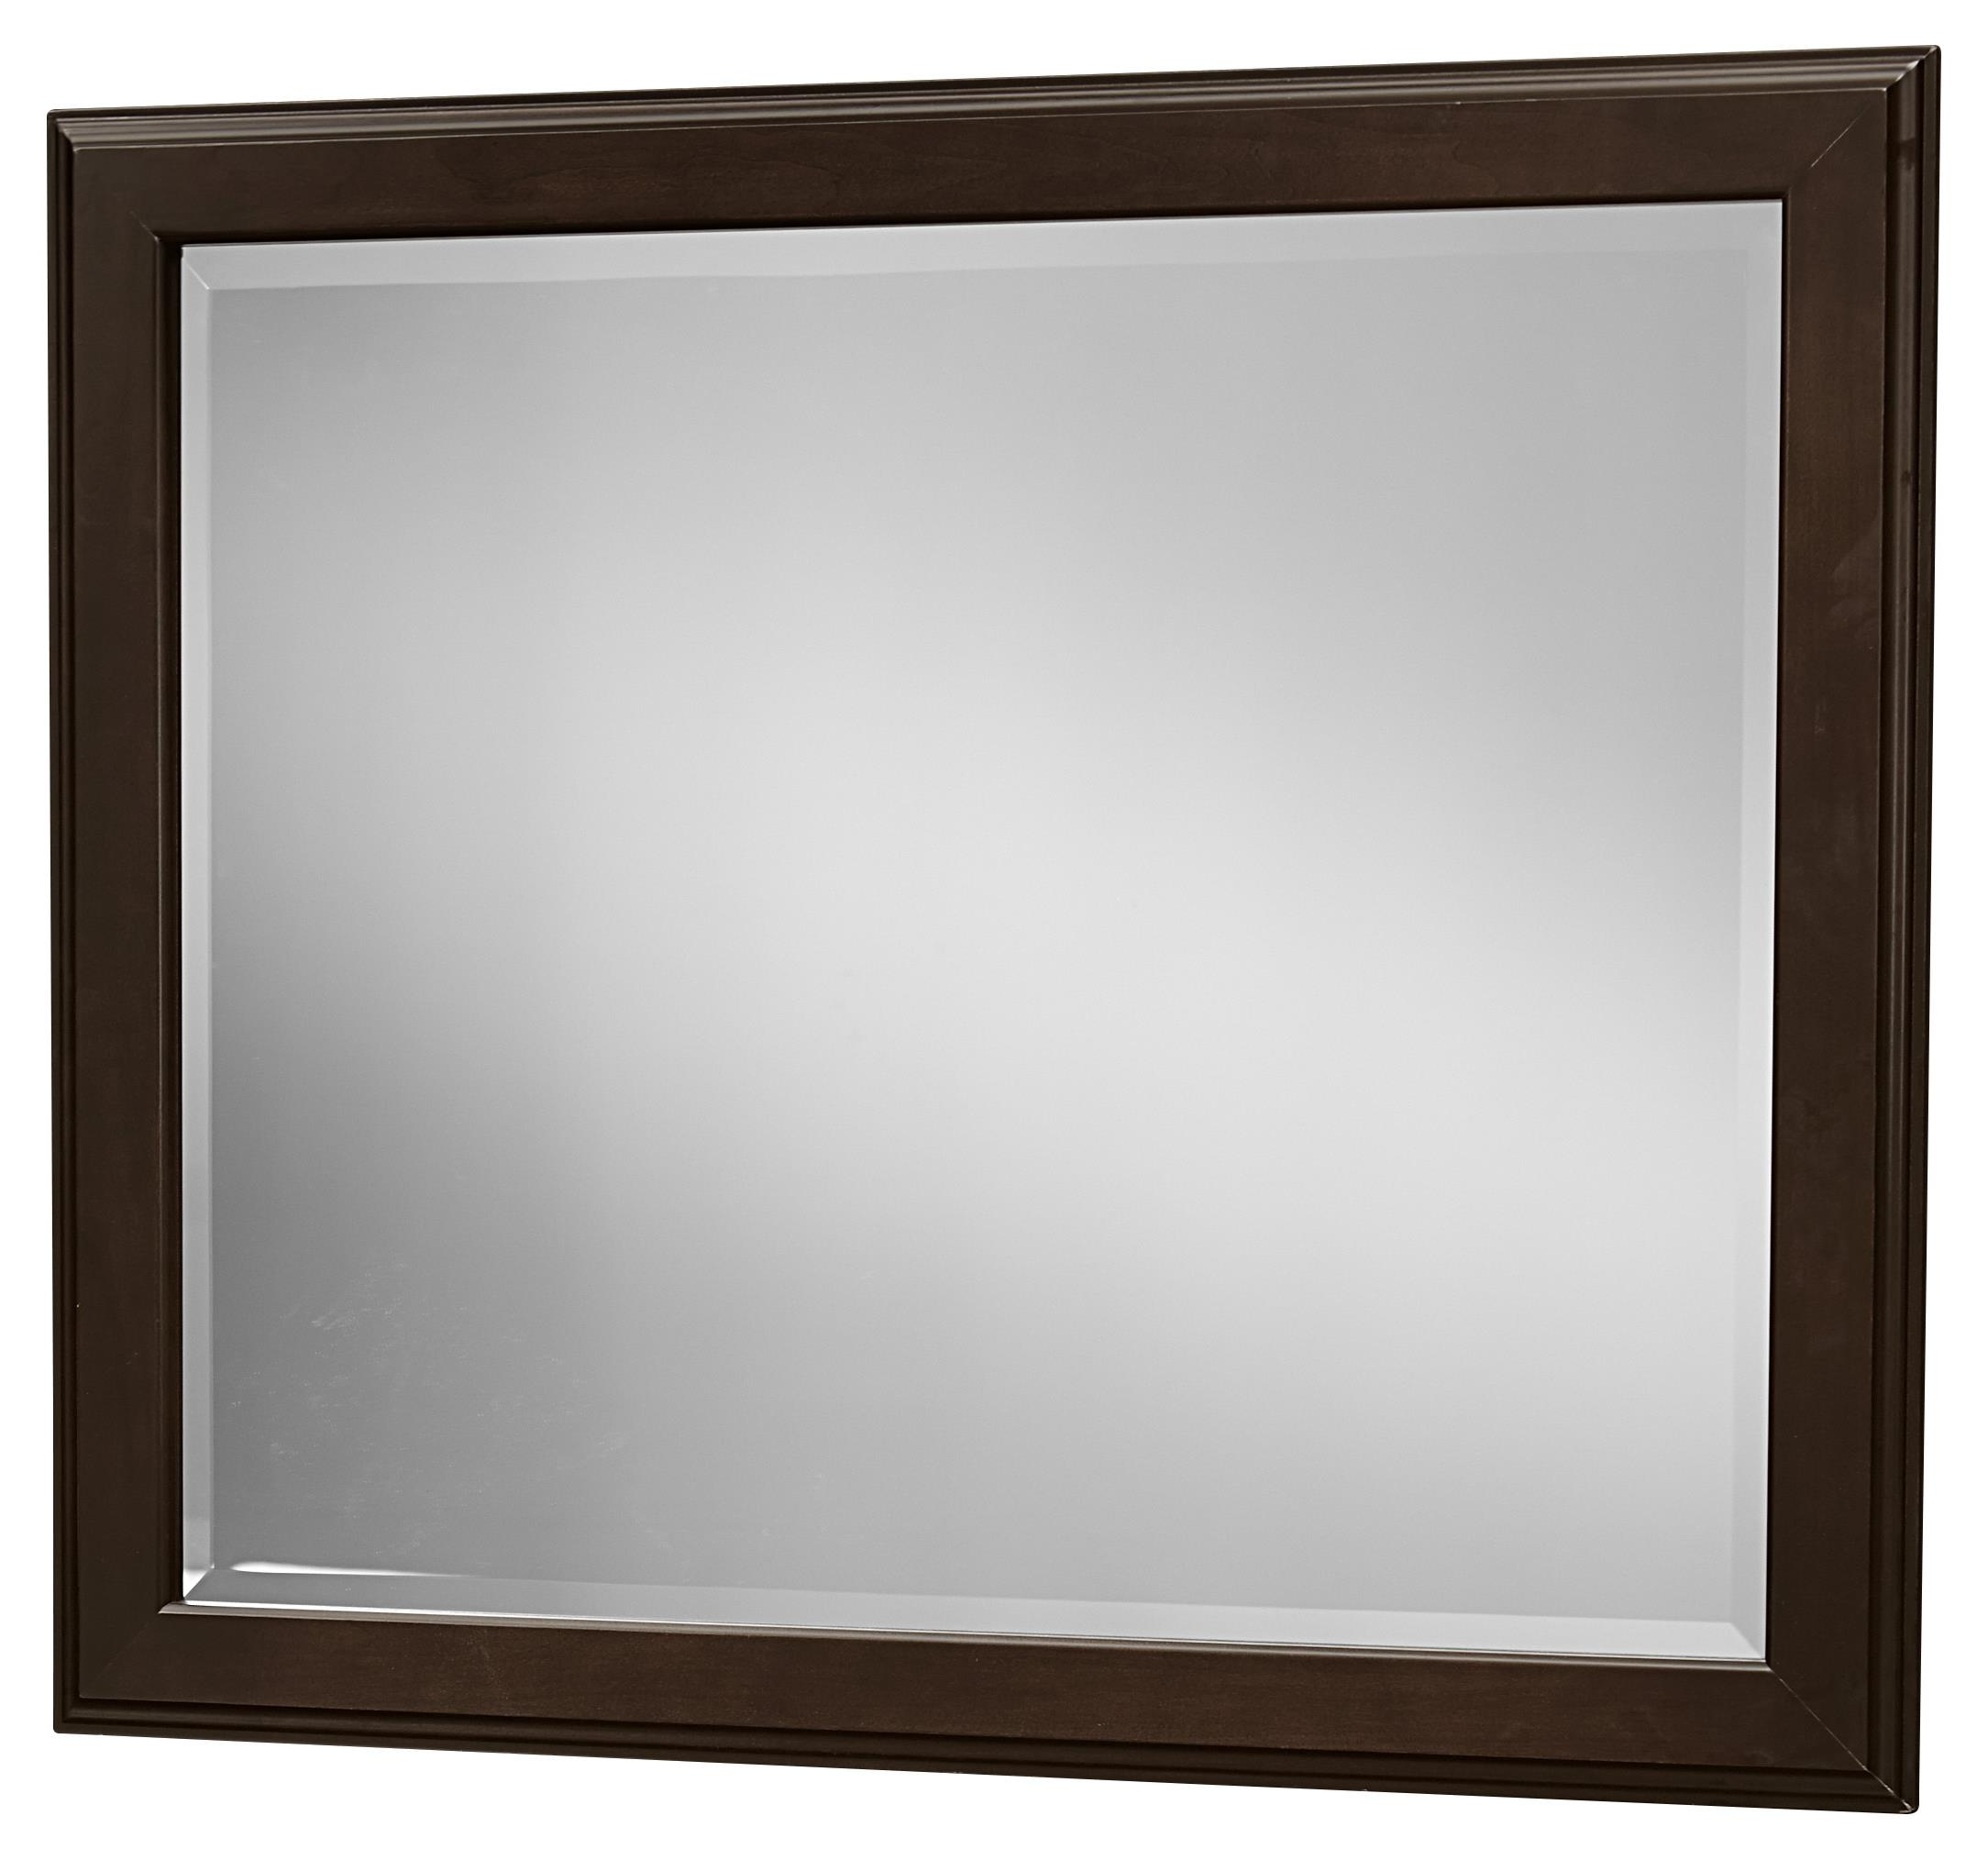 Vaughan Bassett Commentary Large Landscape Mirror - Item Number: 390-445